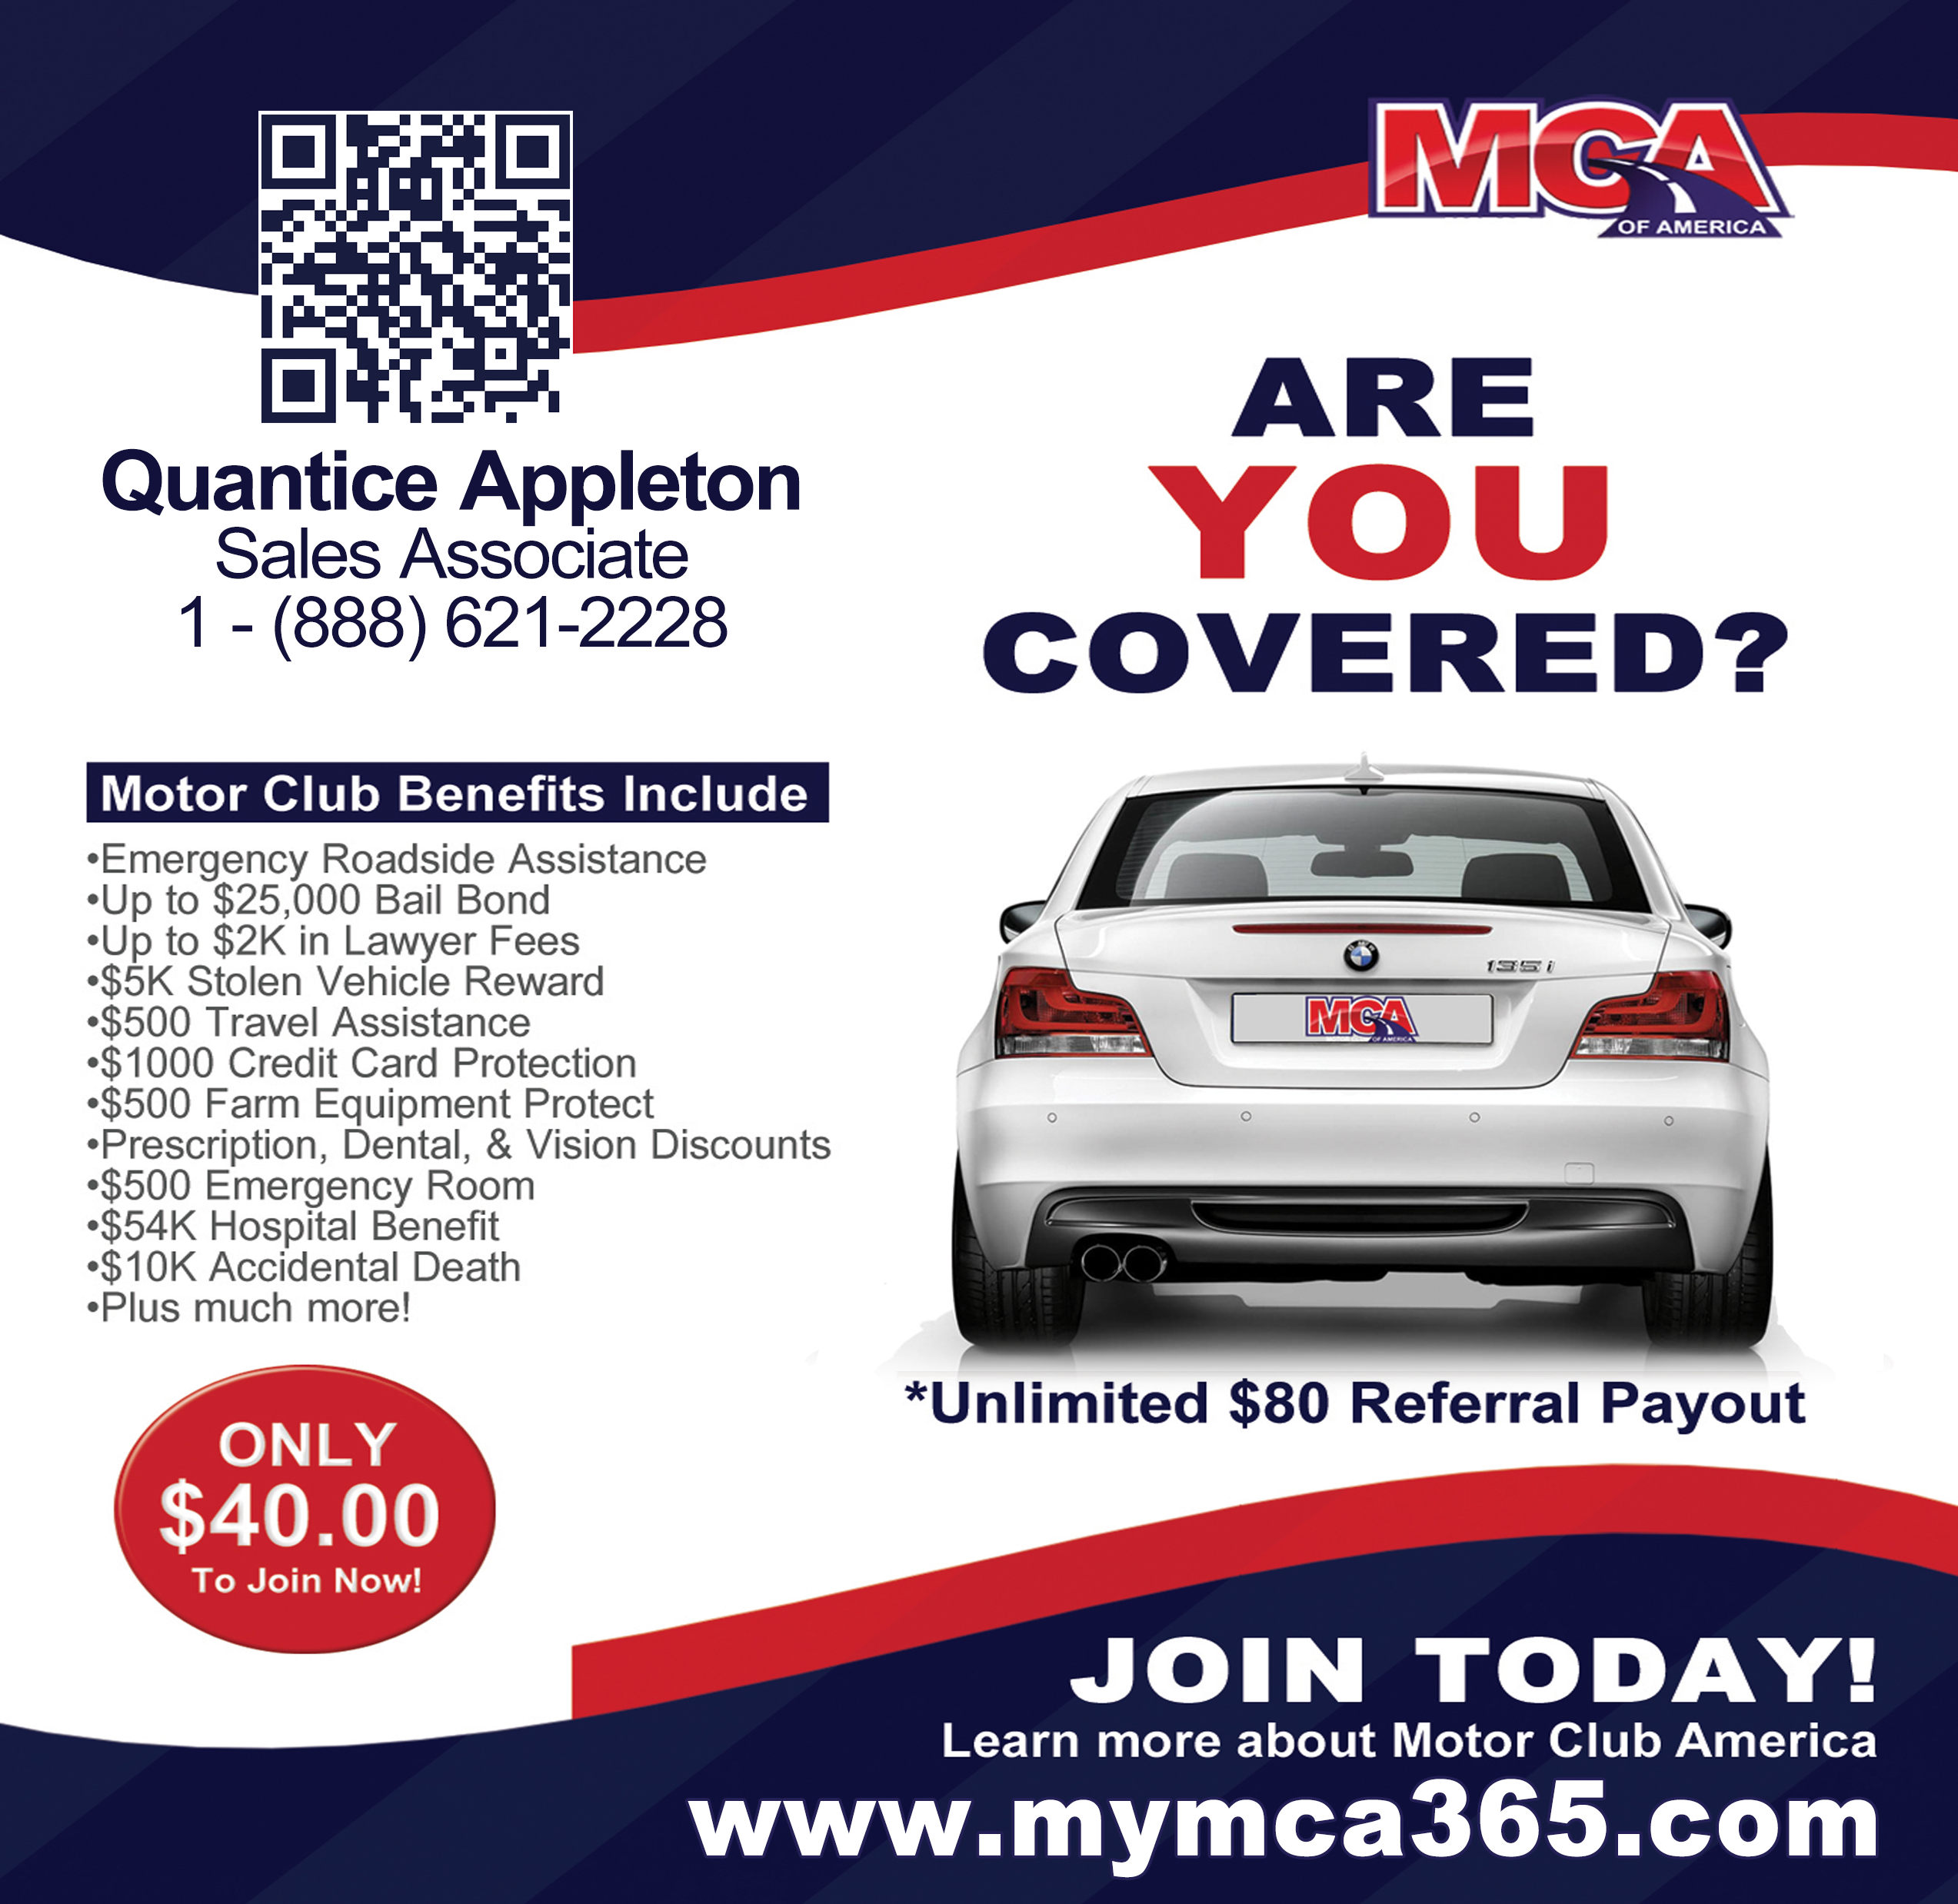 motor club of america a premier automotive club has been in been